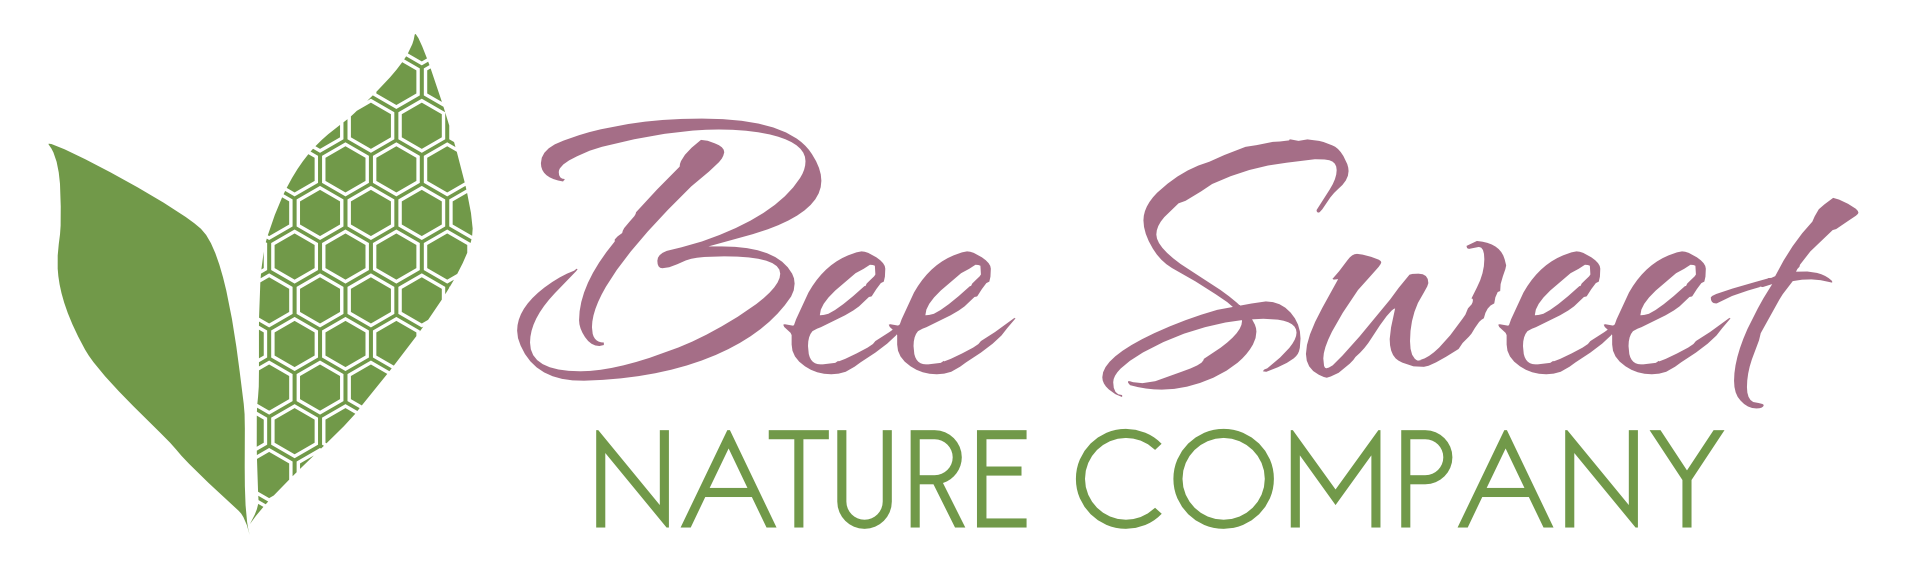 Bee Sweet Nature Co. - Puslinch, Ontario, Canada